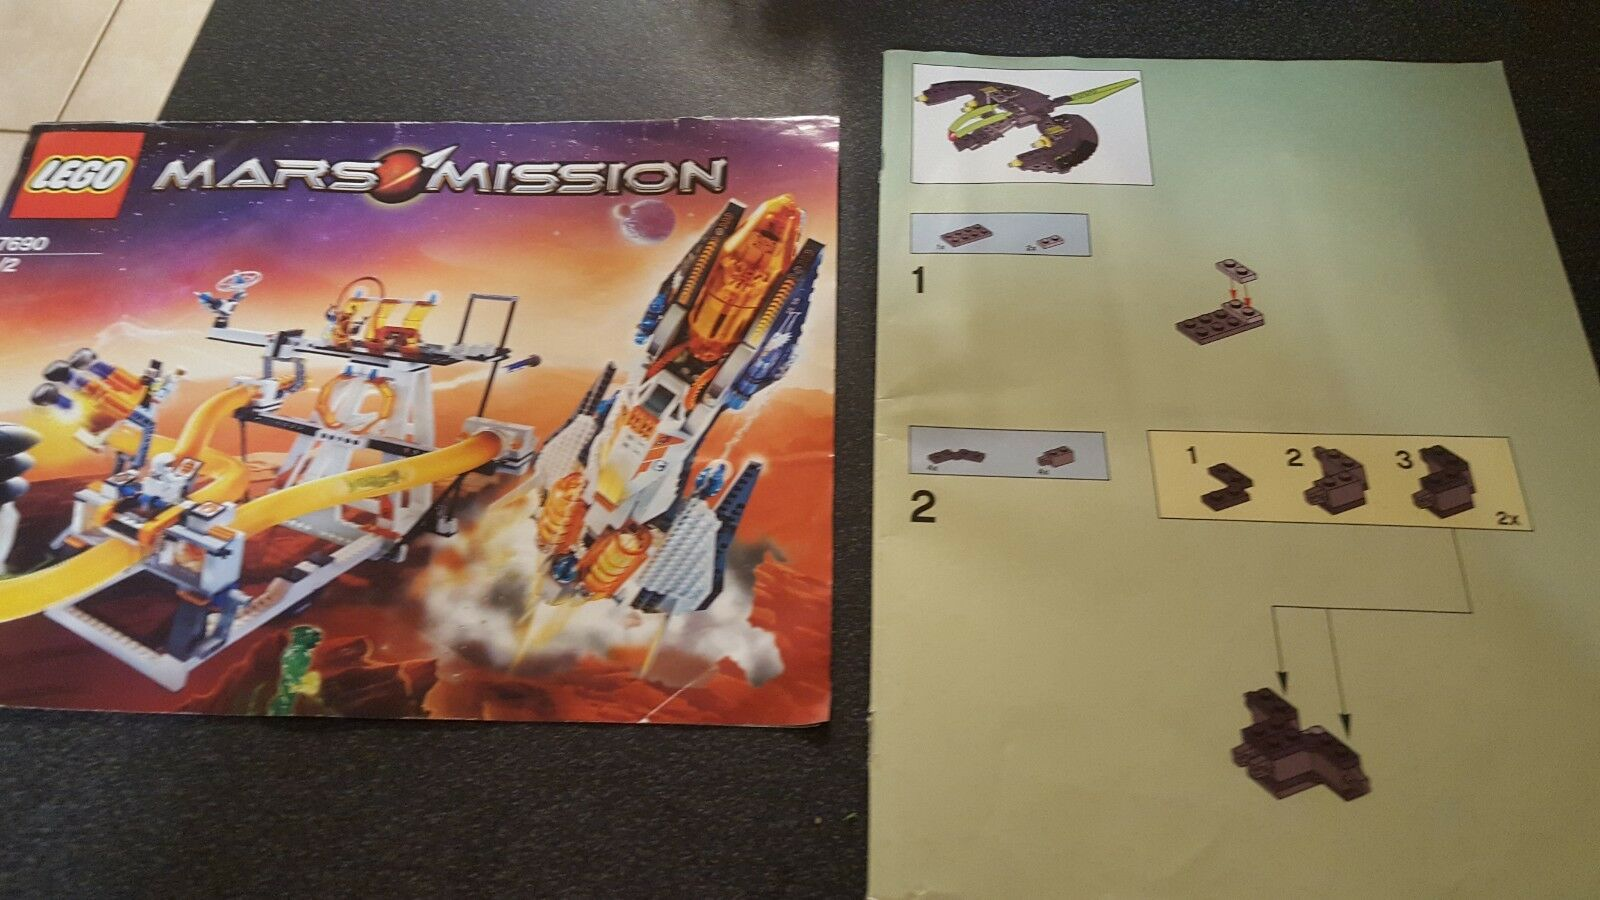 Lego 7690 (Book (Book (Book 1 & 2)  Mars Mission   Hundred's Of Pieces 96a65a